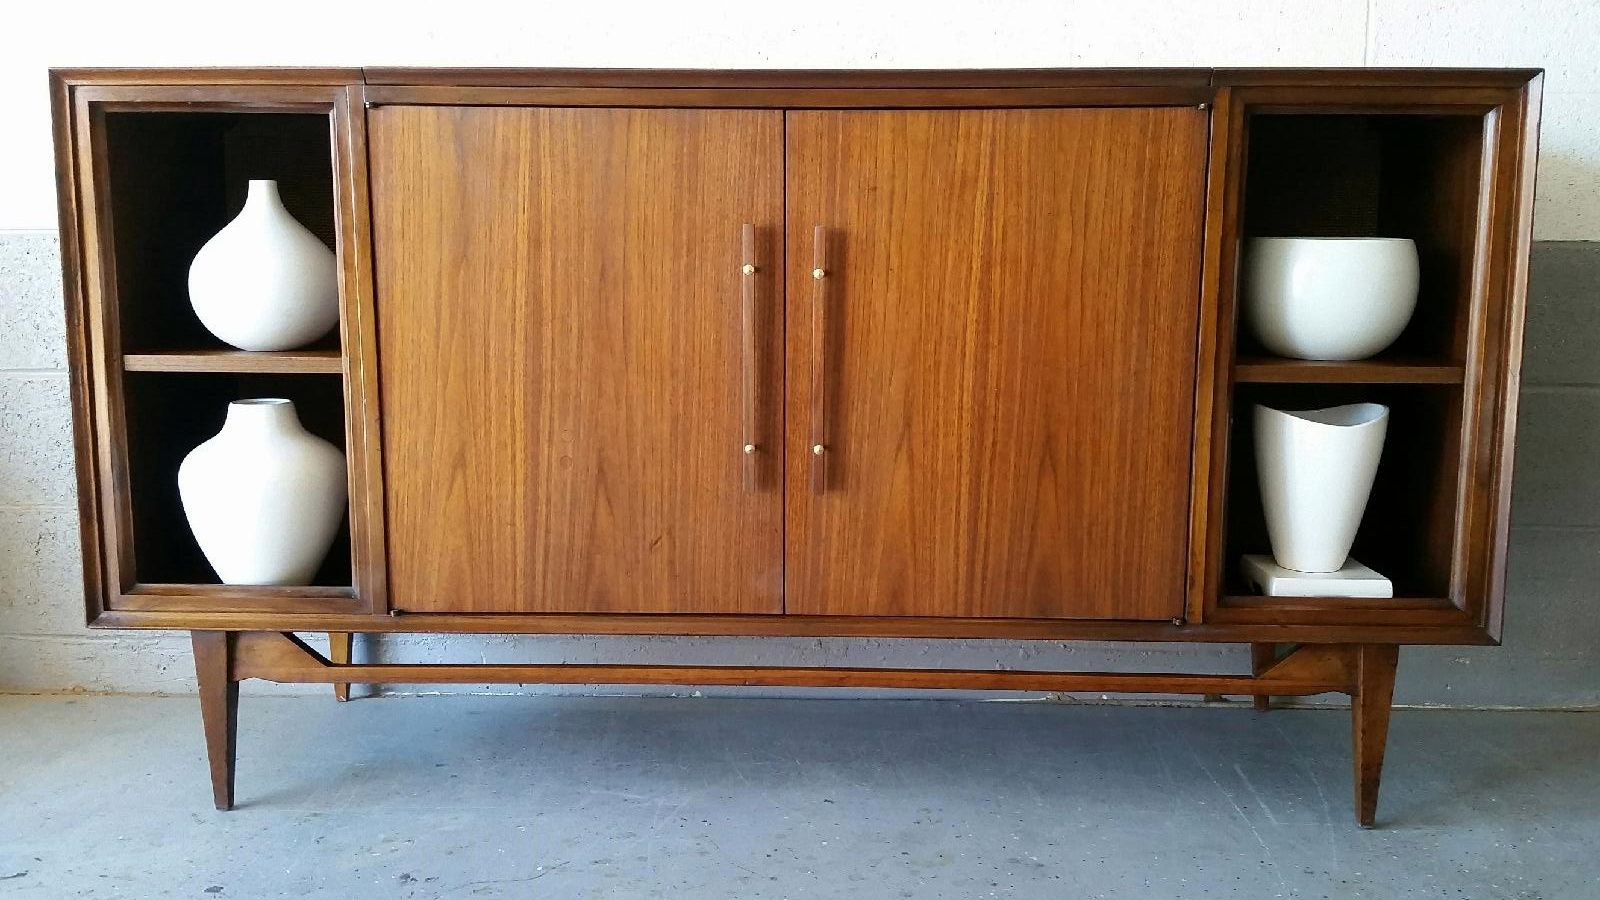 Mid Century Credenza Repurposed From A Vintage Stereo Cabinet.